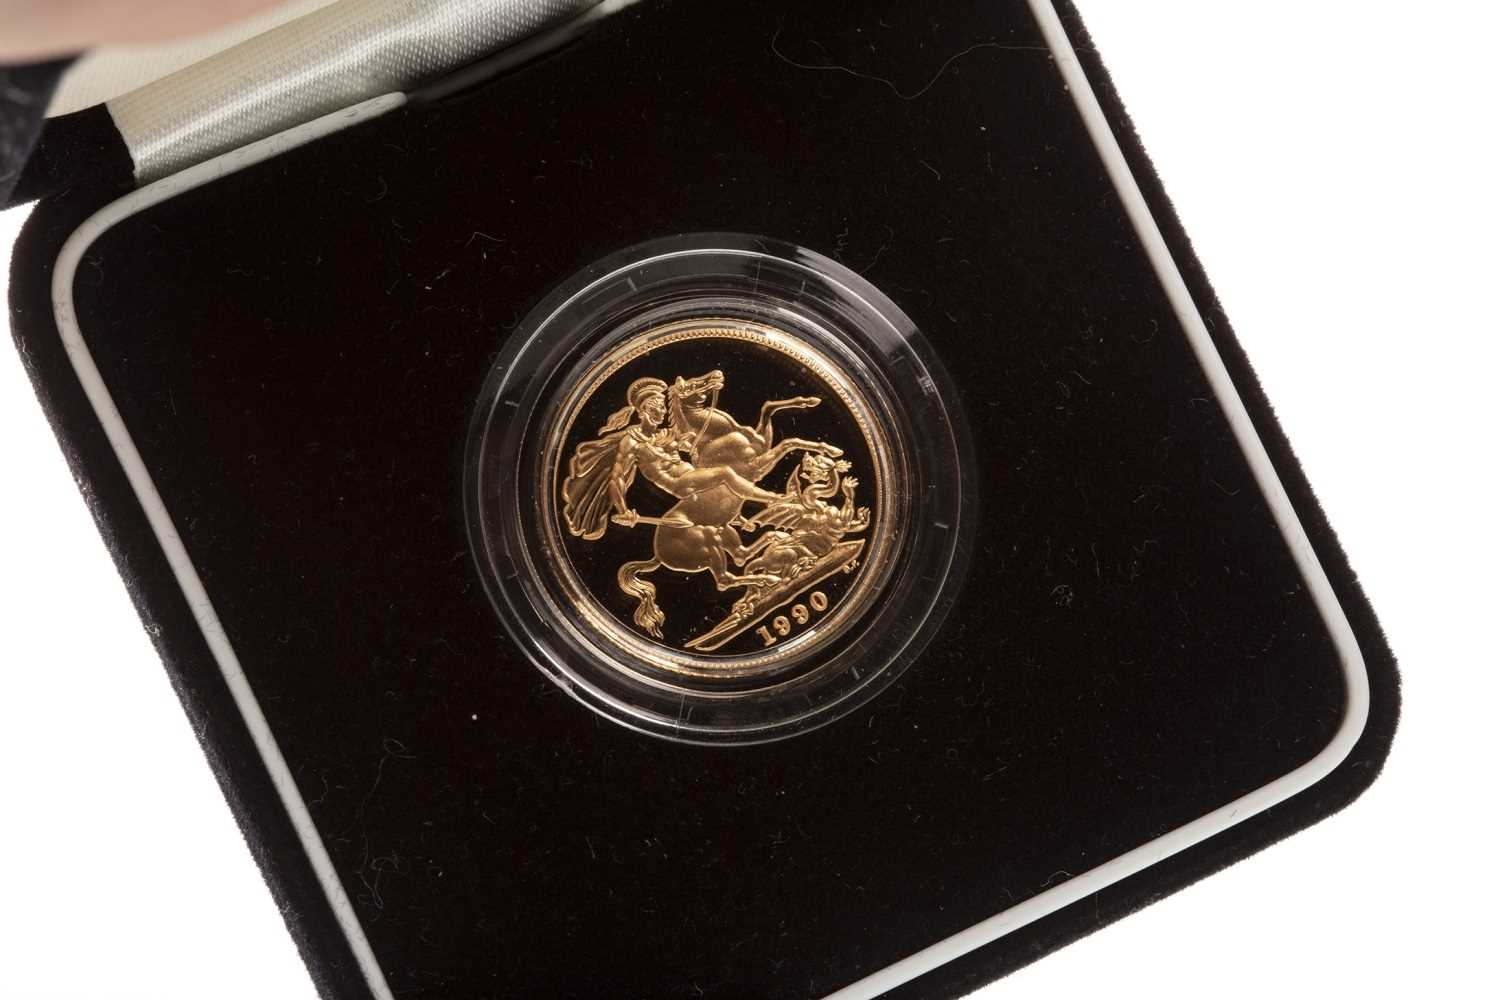 Lot 512-A THE ROYAL MINT 1990 PROOF SOVEREIGN